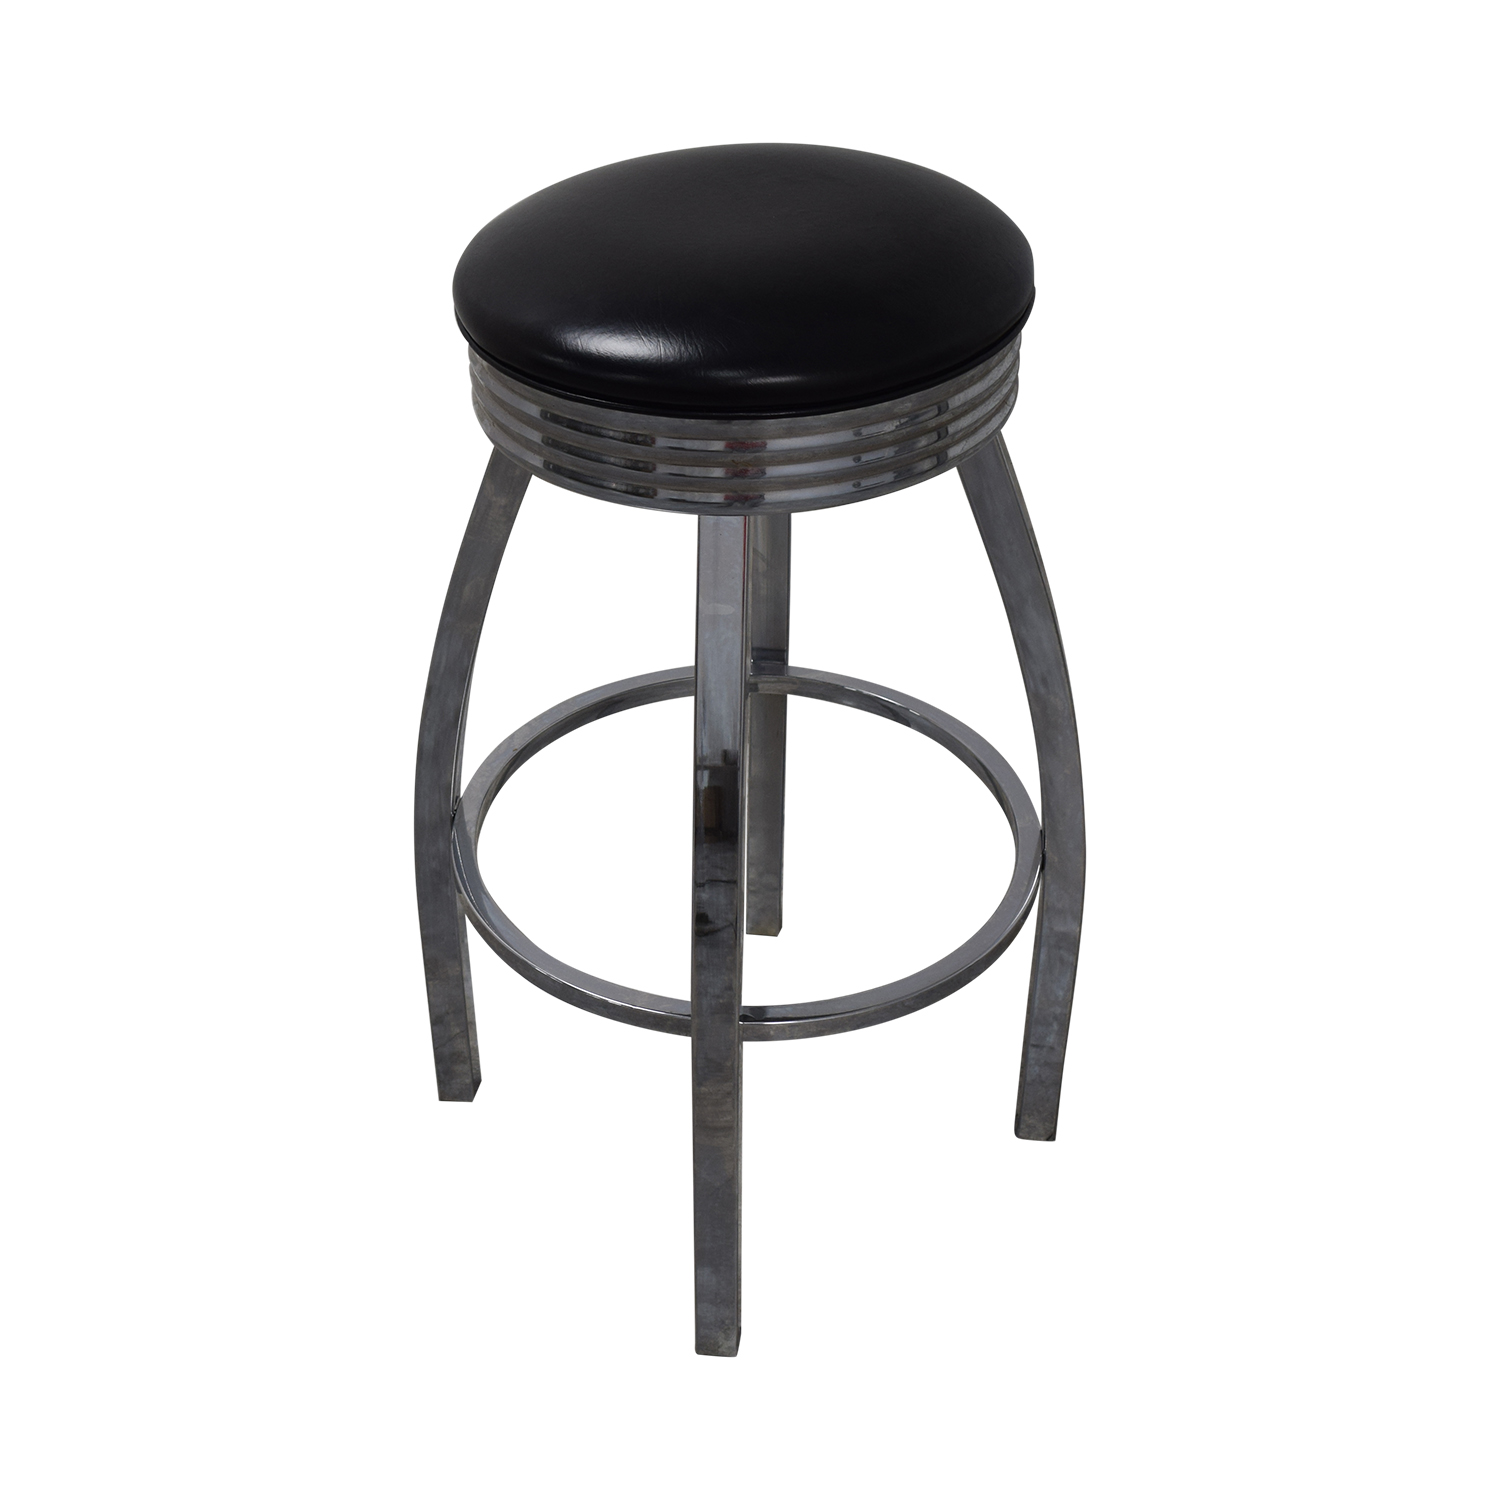 Chrome Glass and Black Bar with Stools Dining Sets